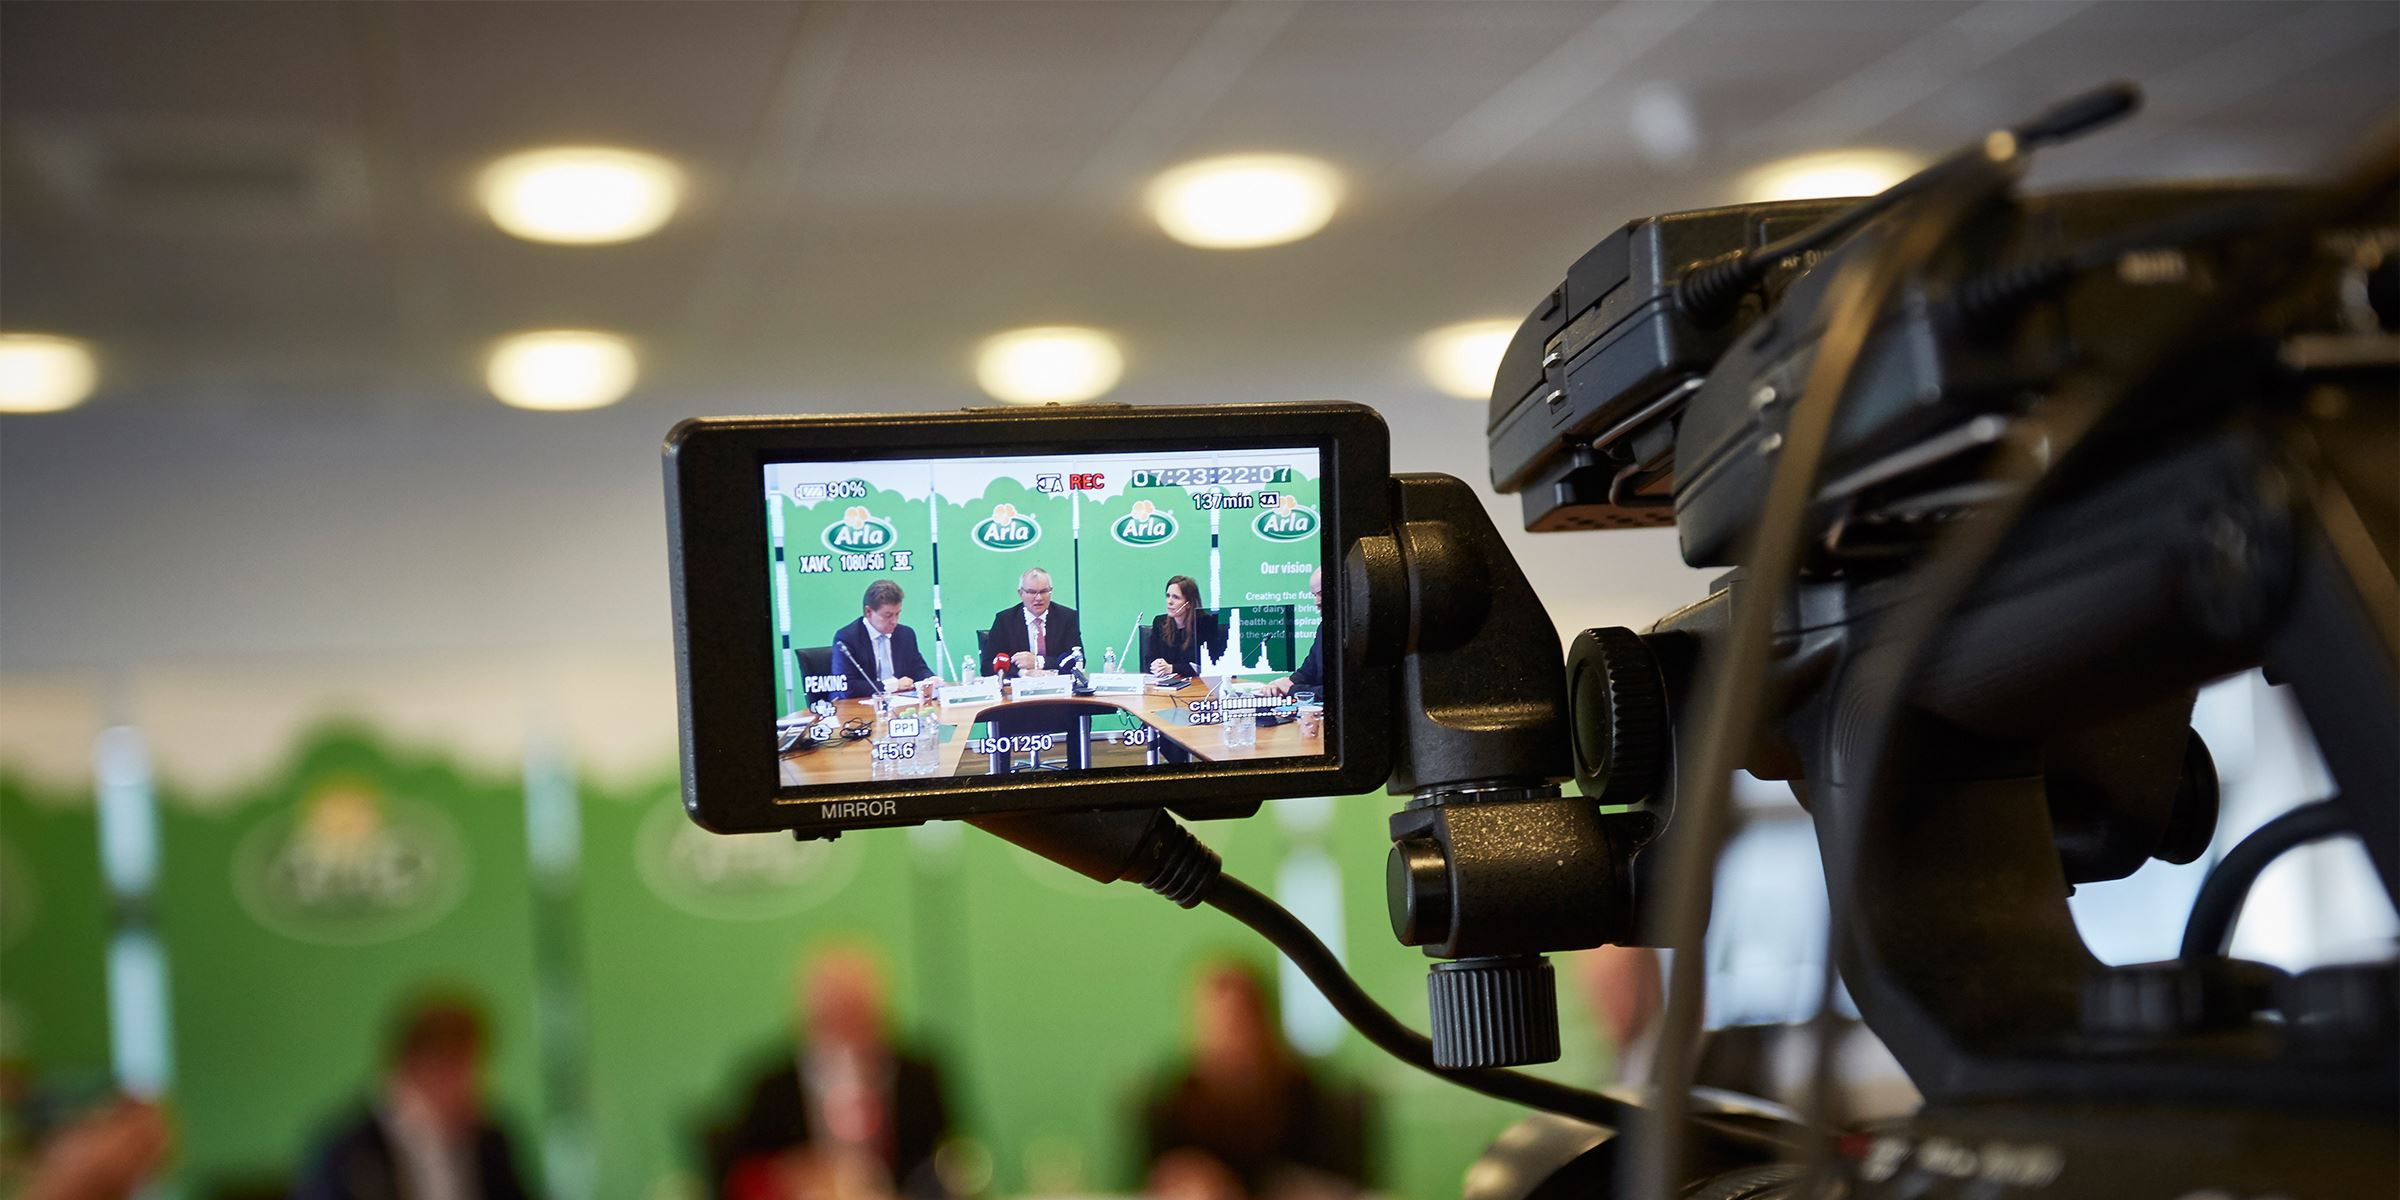 An Arla press meeting seen through the viewfinder of a camcorder